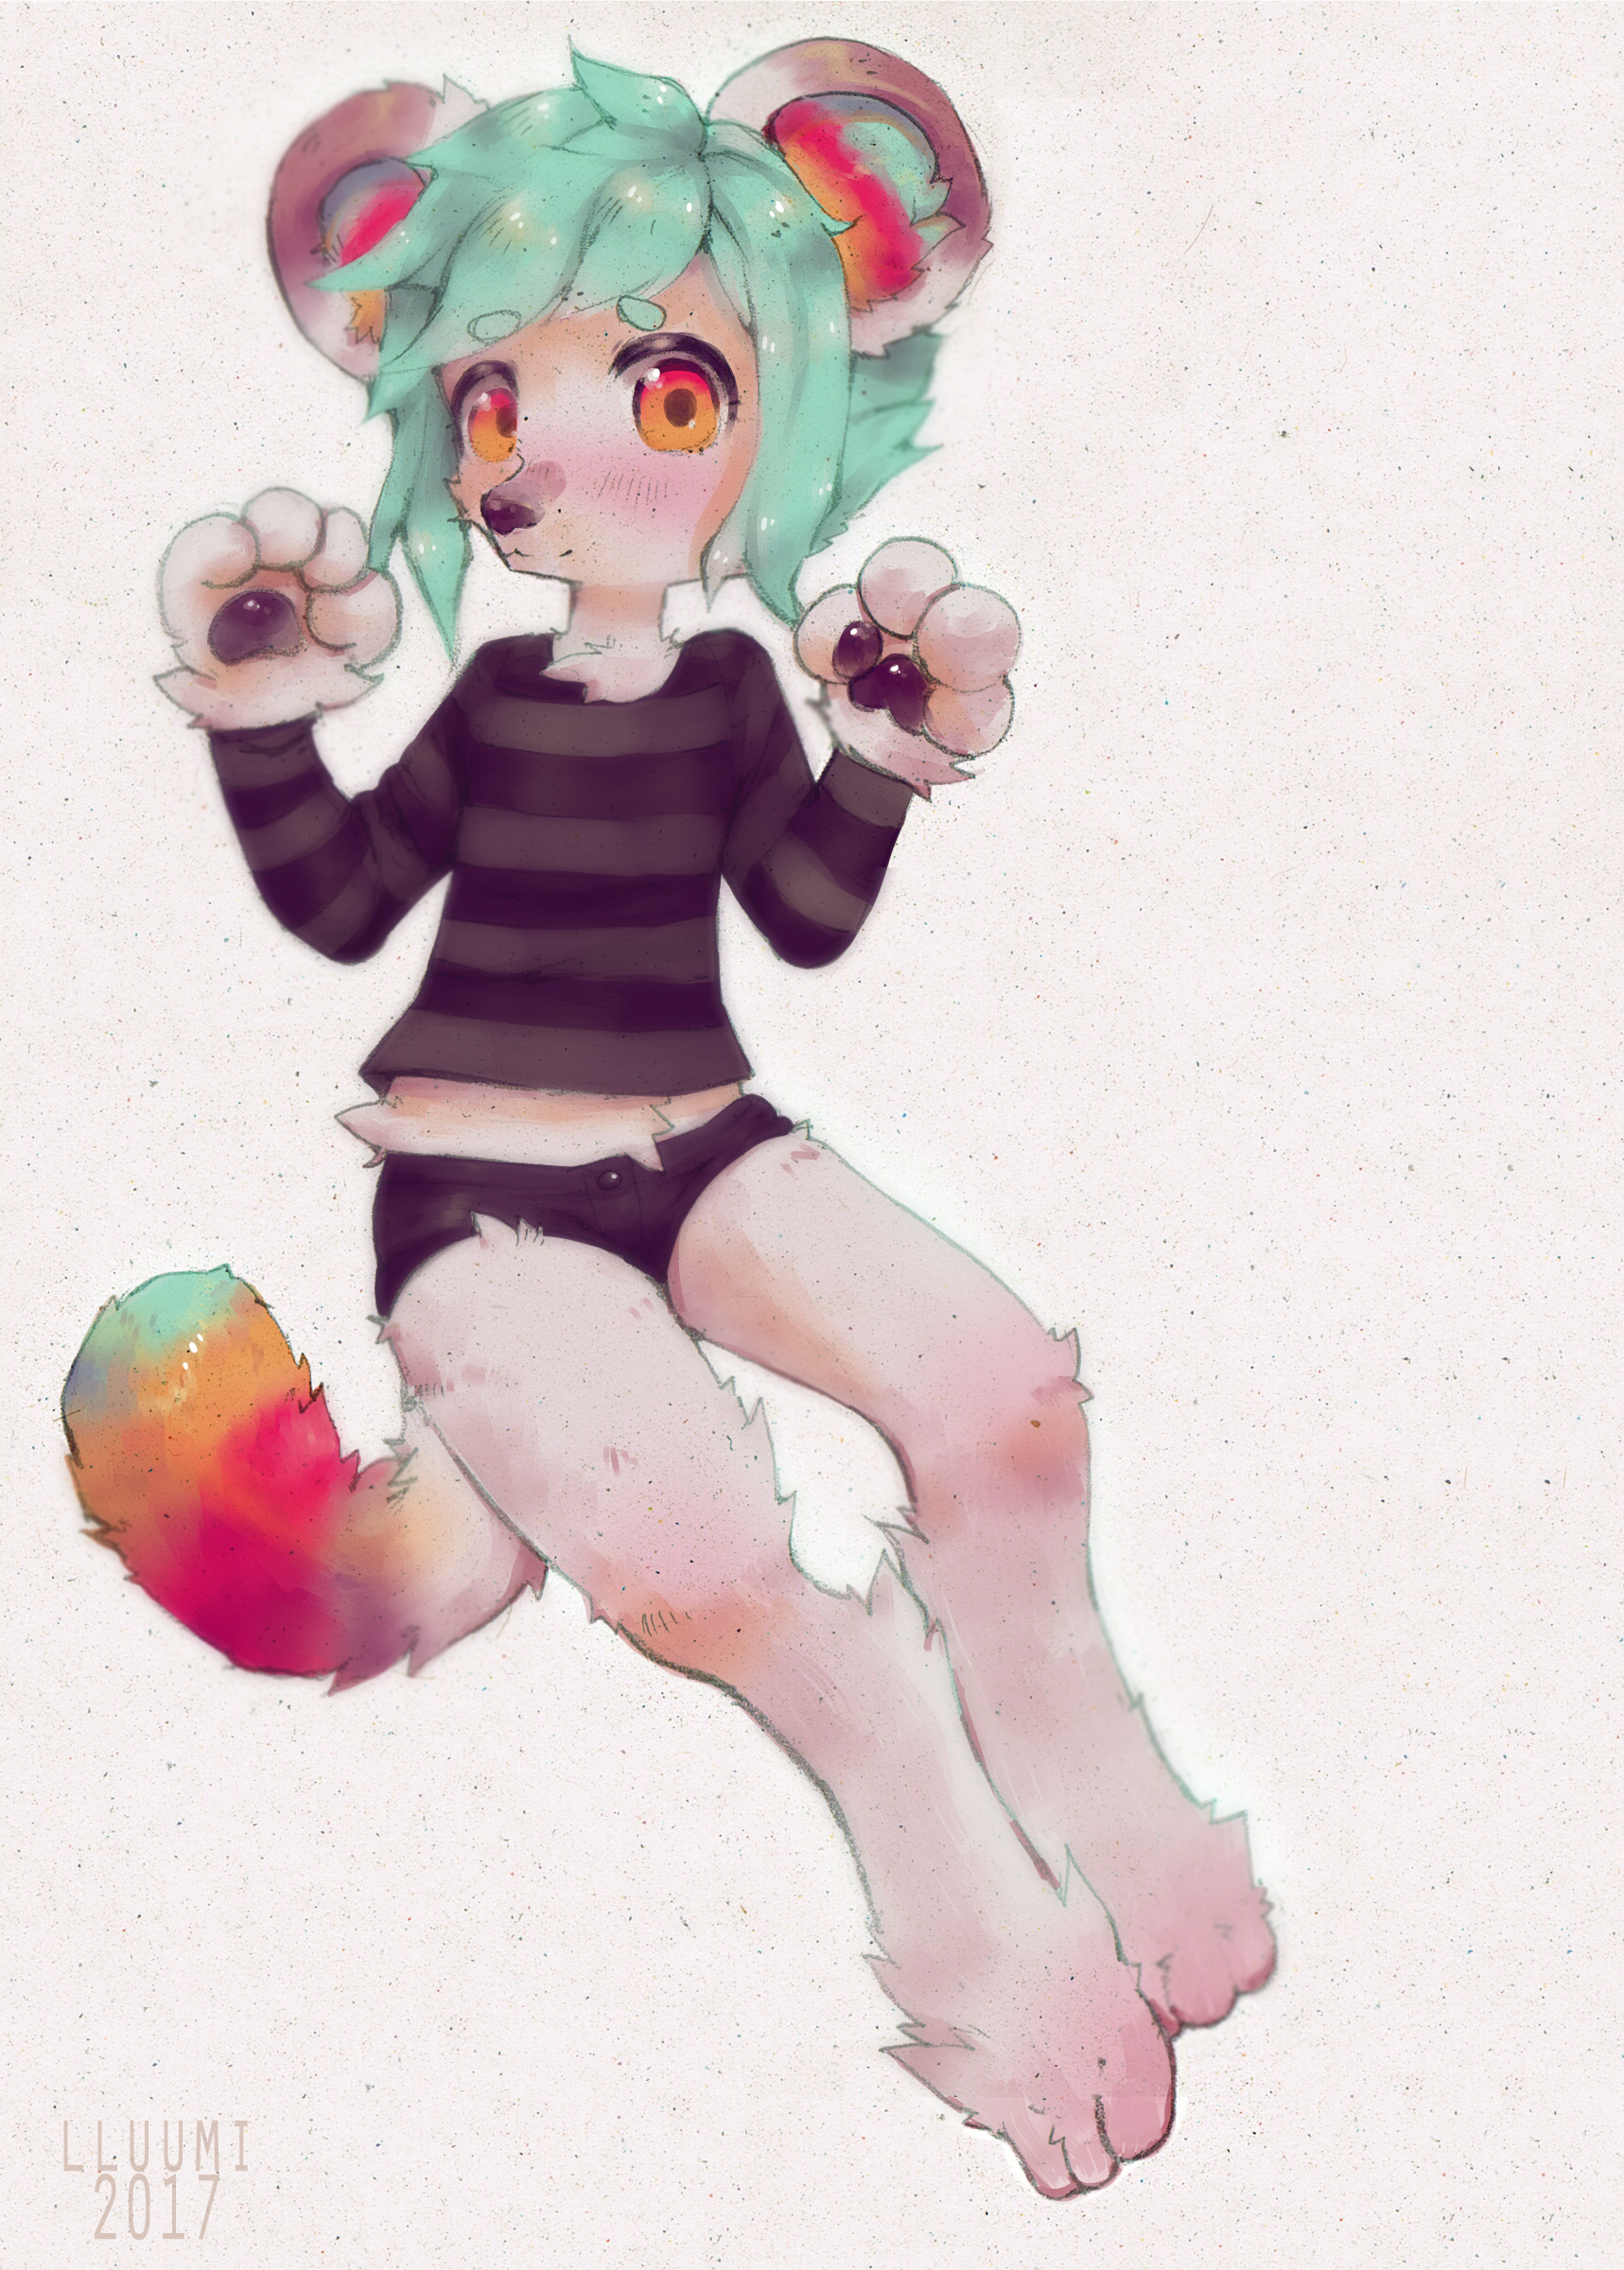 e926 big_feet clothed clothing coloured_hair fluffy fluffy_tail kemono lluumi paws solo striped_shirt